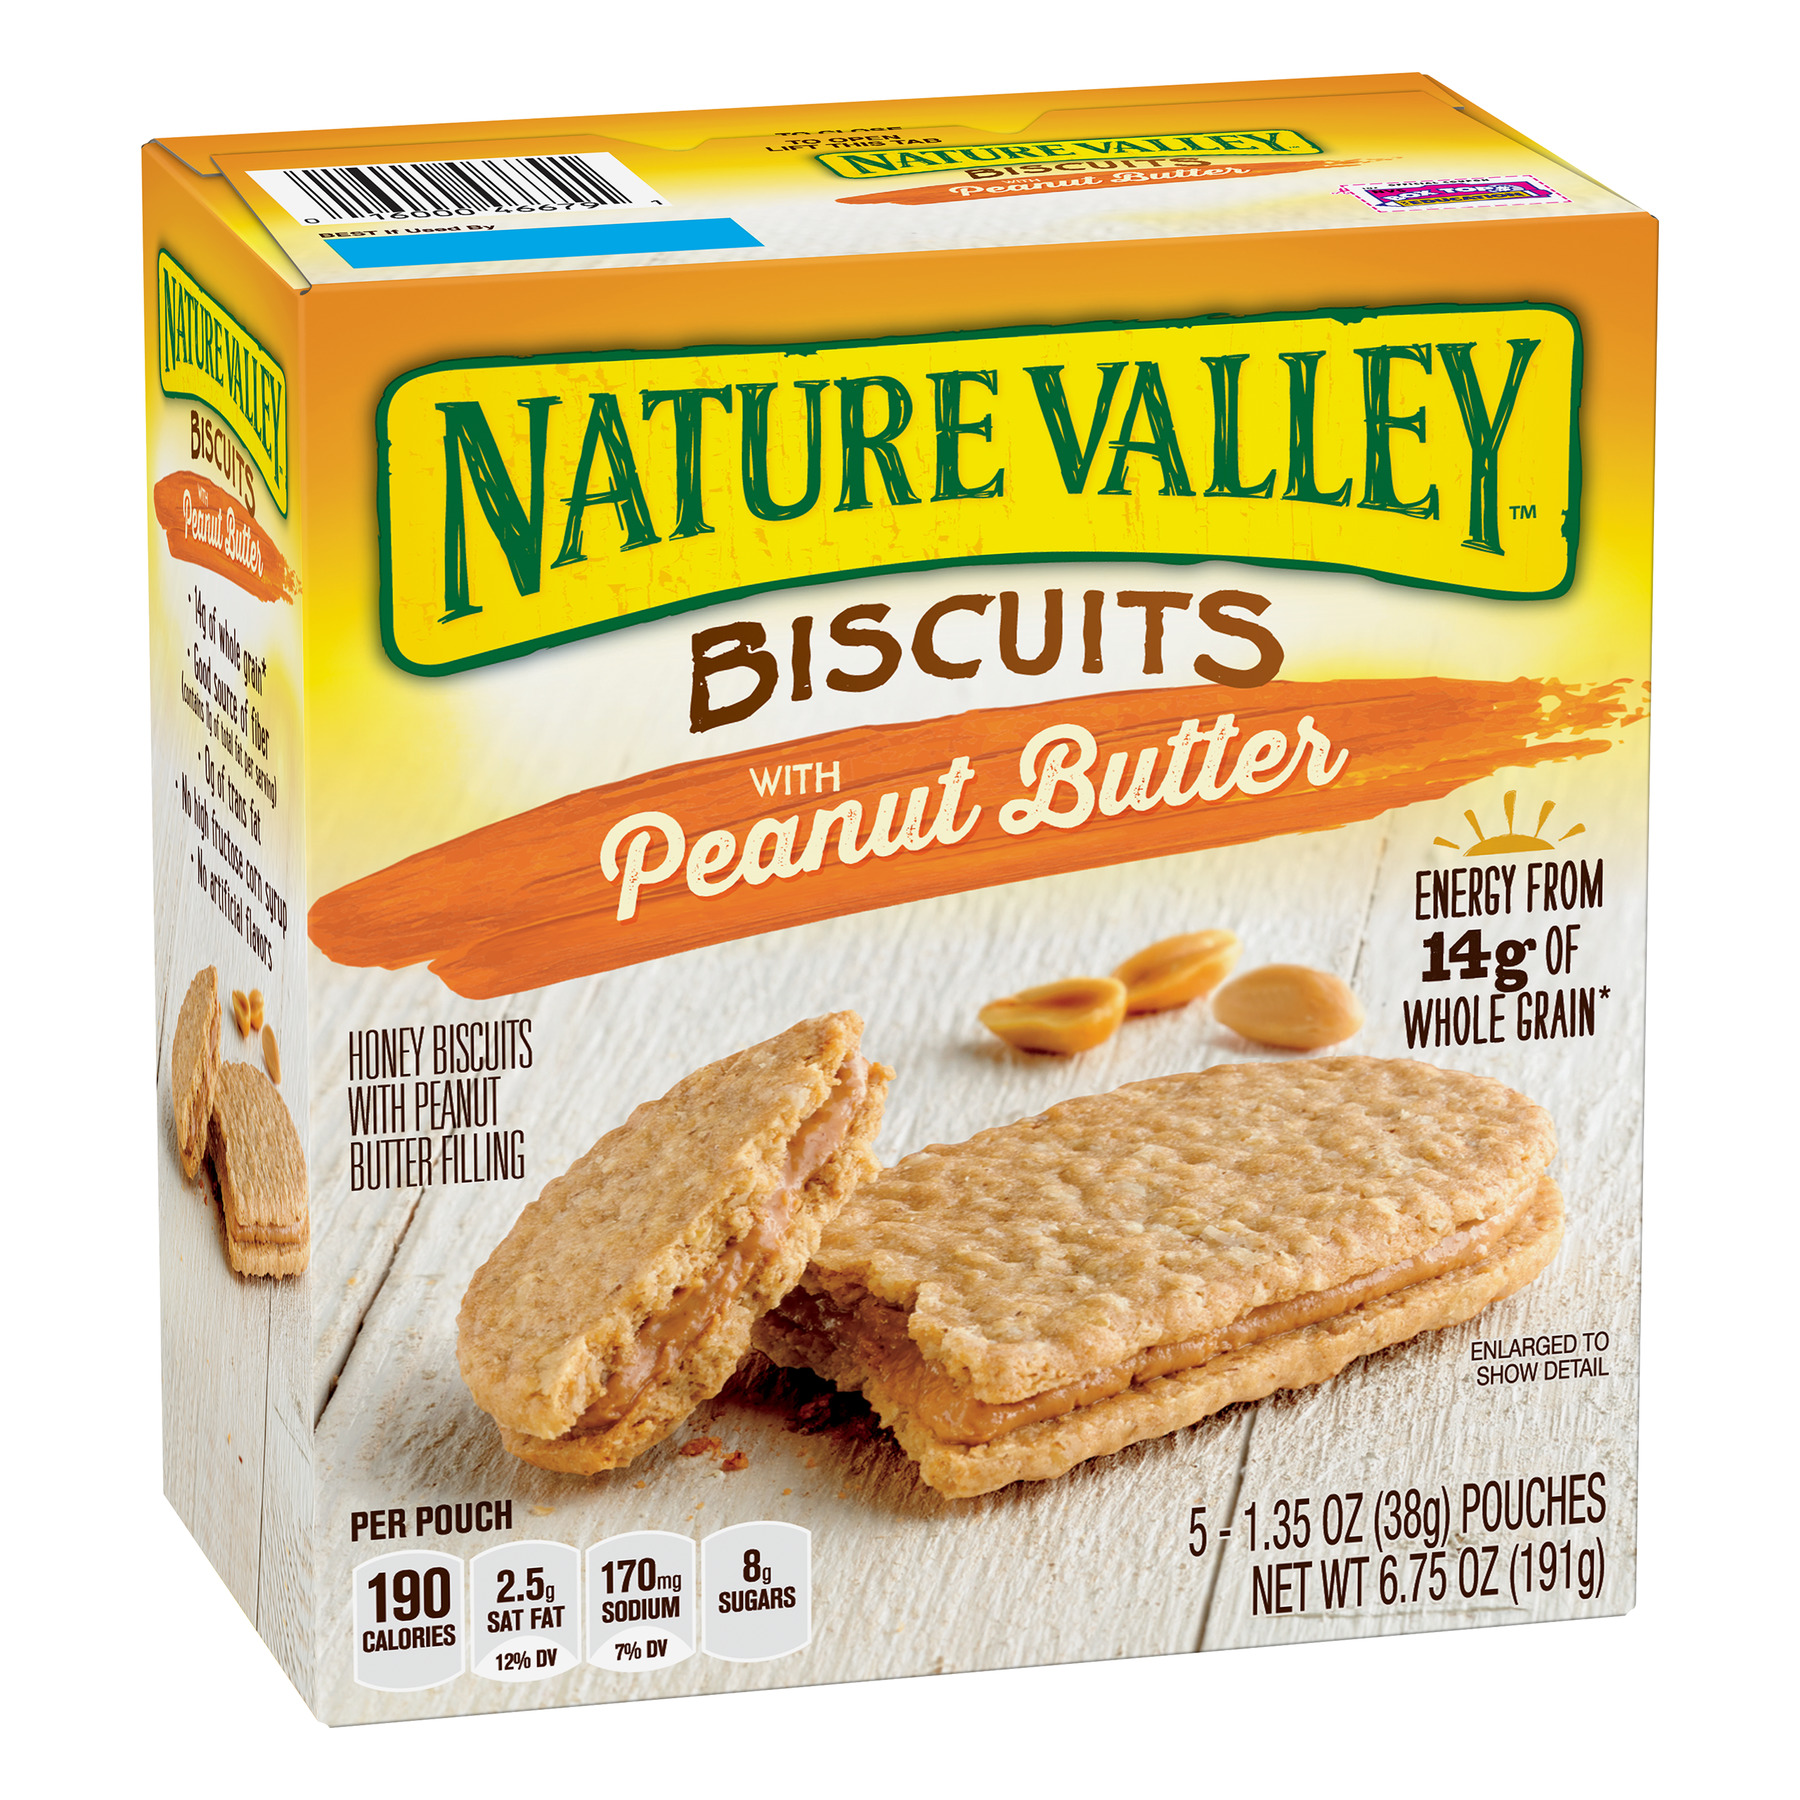 Nature Valley Peanut Butter Breakfast Biscuits with Nut Filling 5 Bars